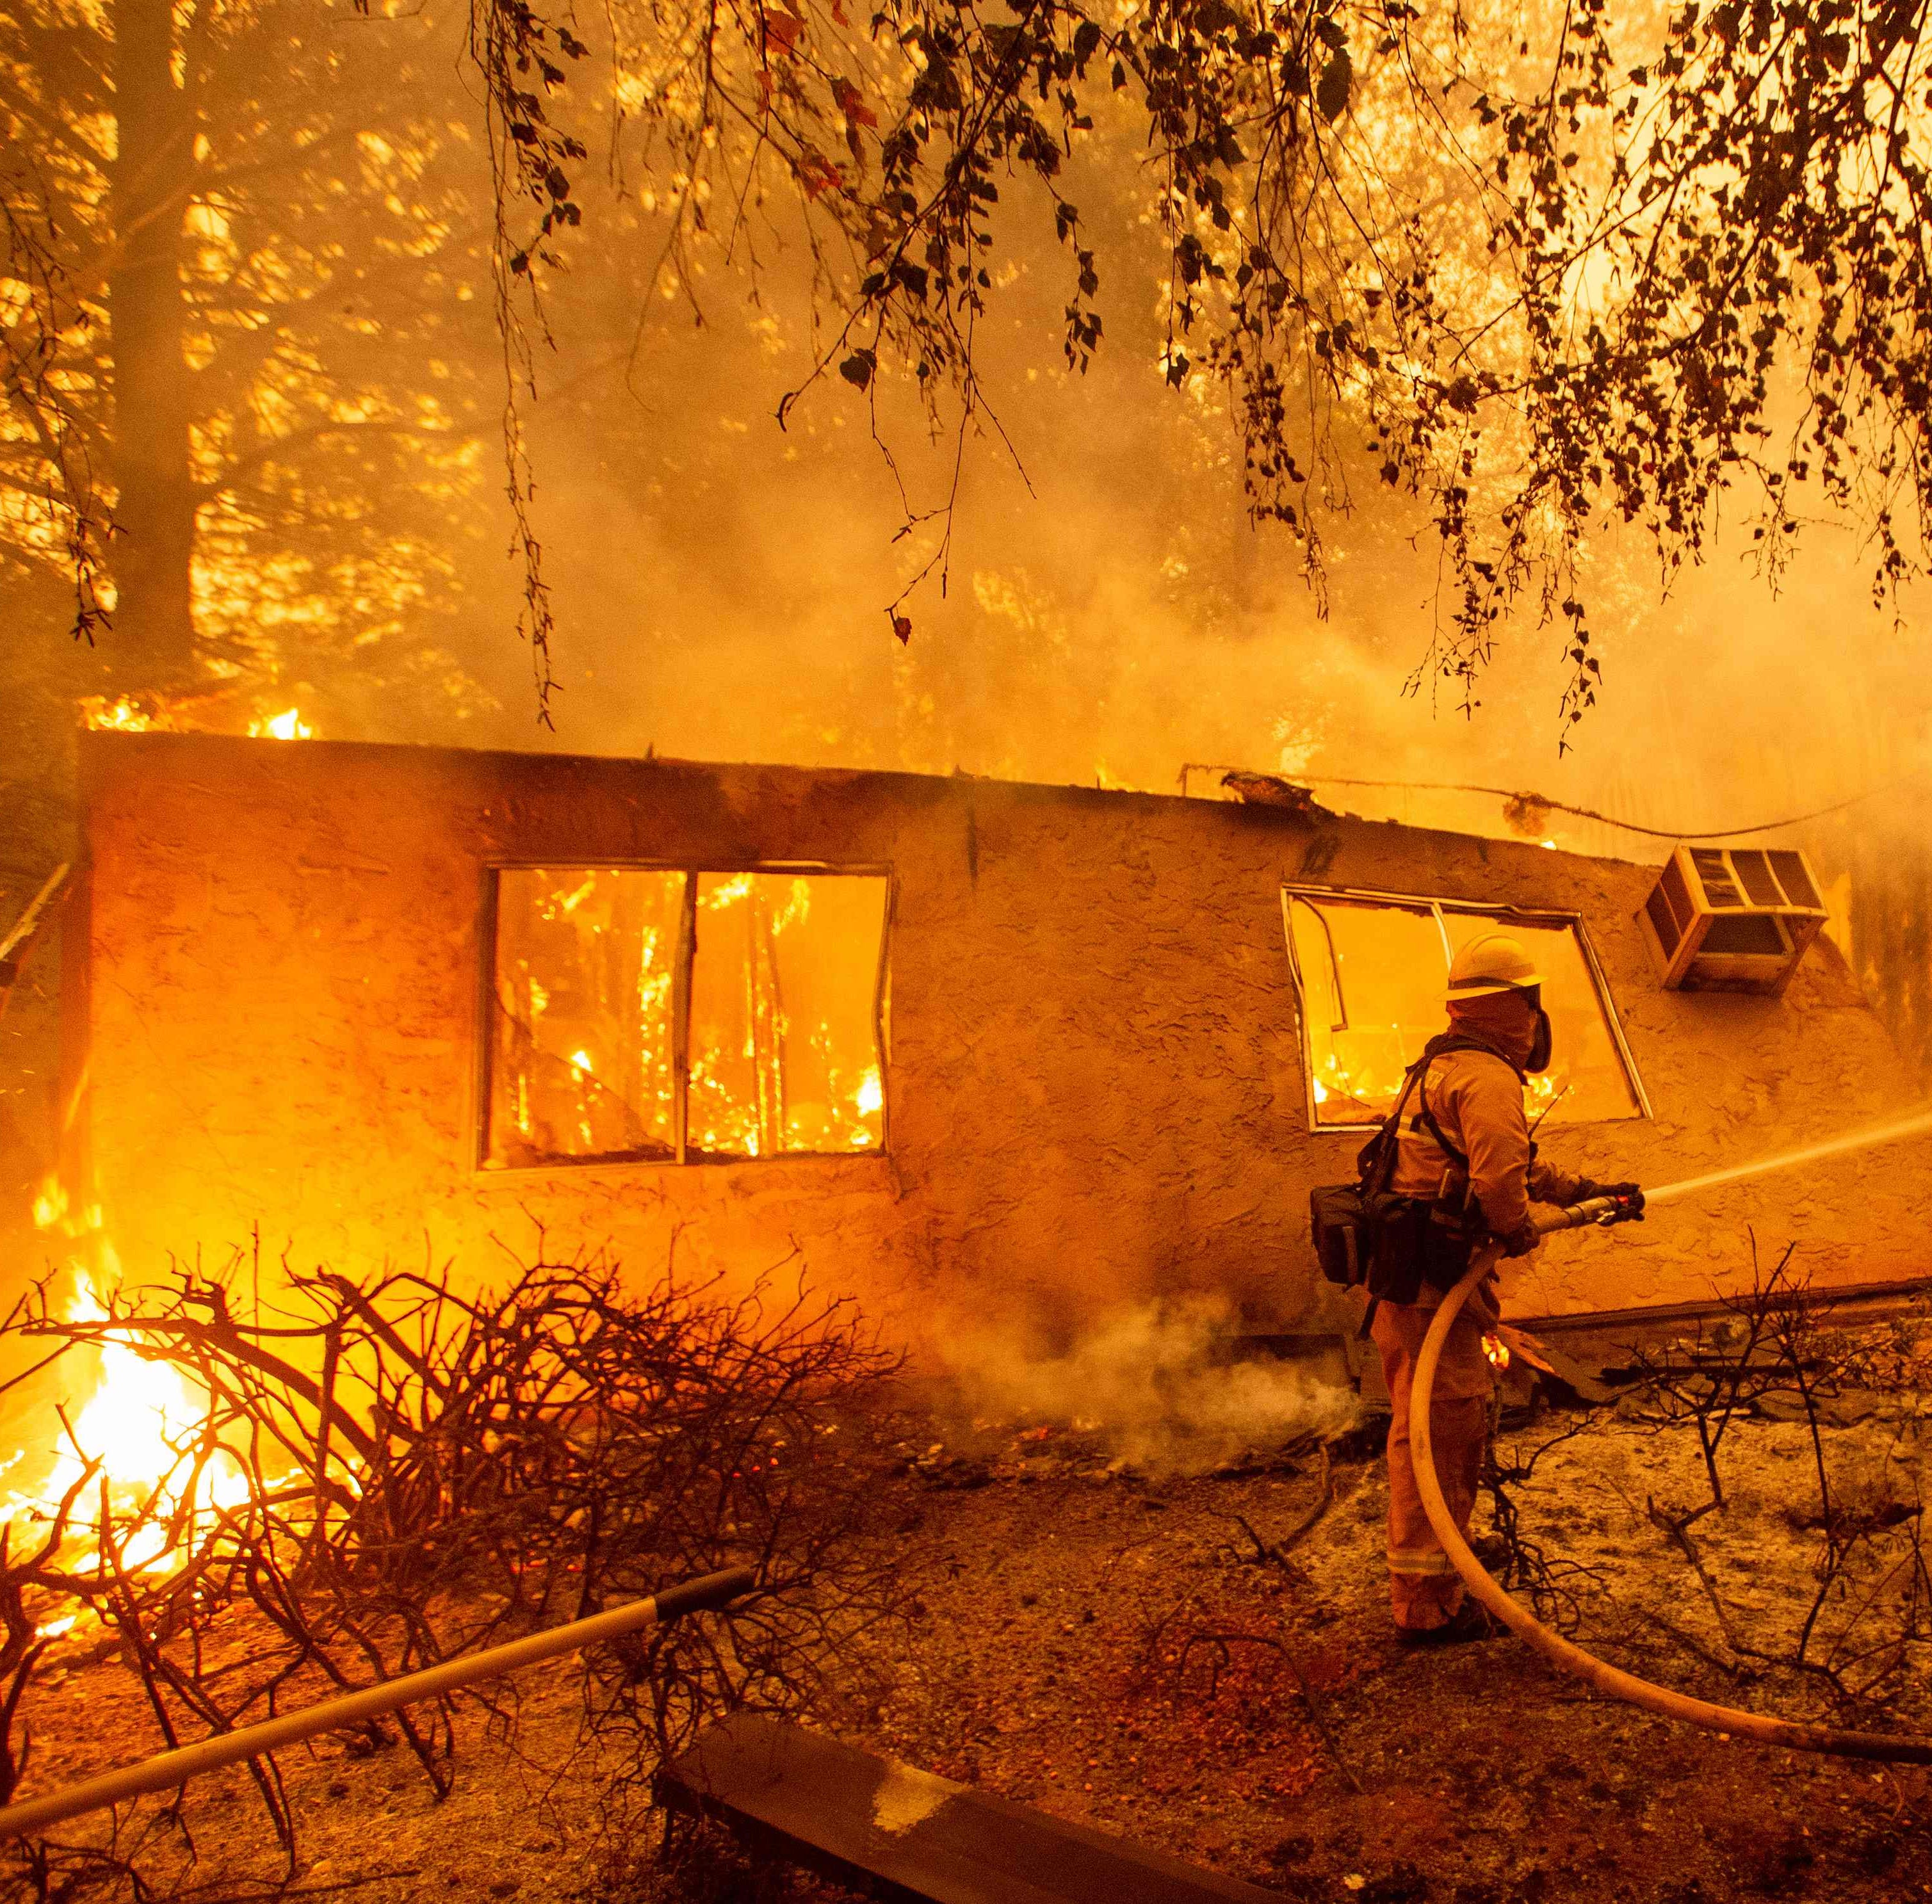 Doug LaMalfa: We need common-sense forest policies to prevent wildfires